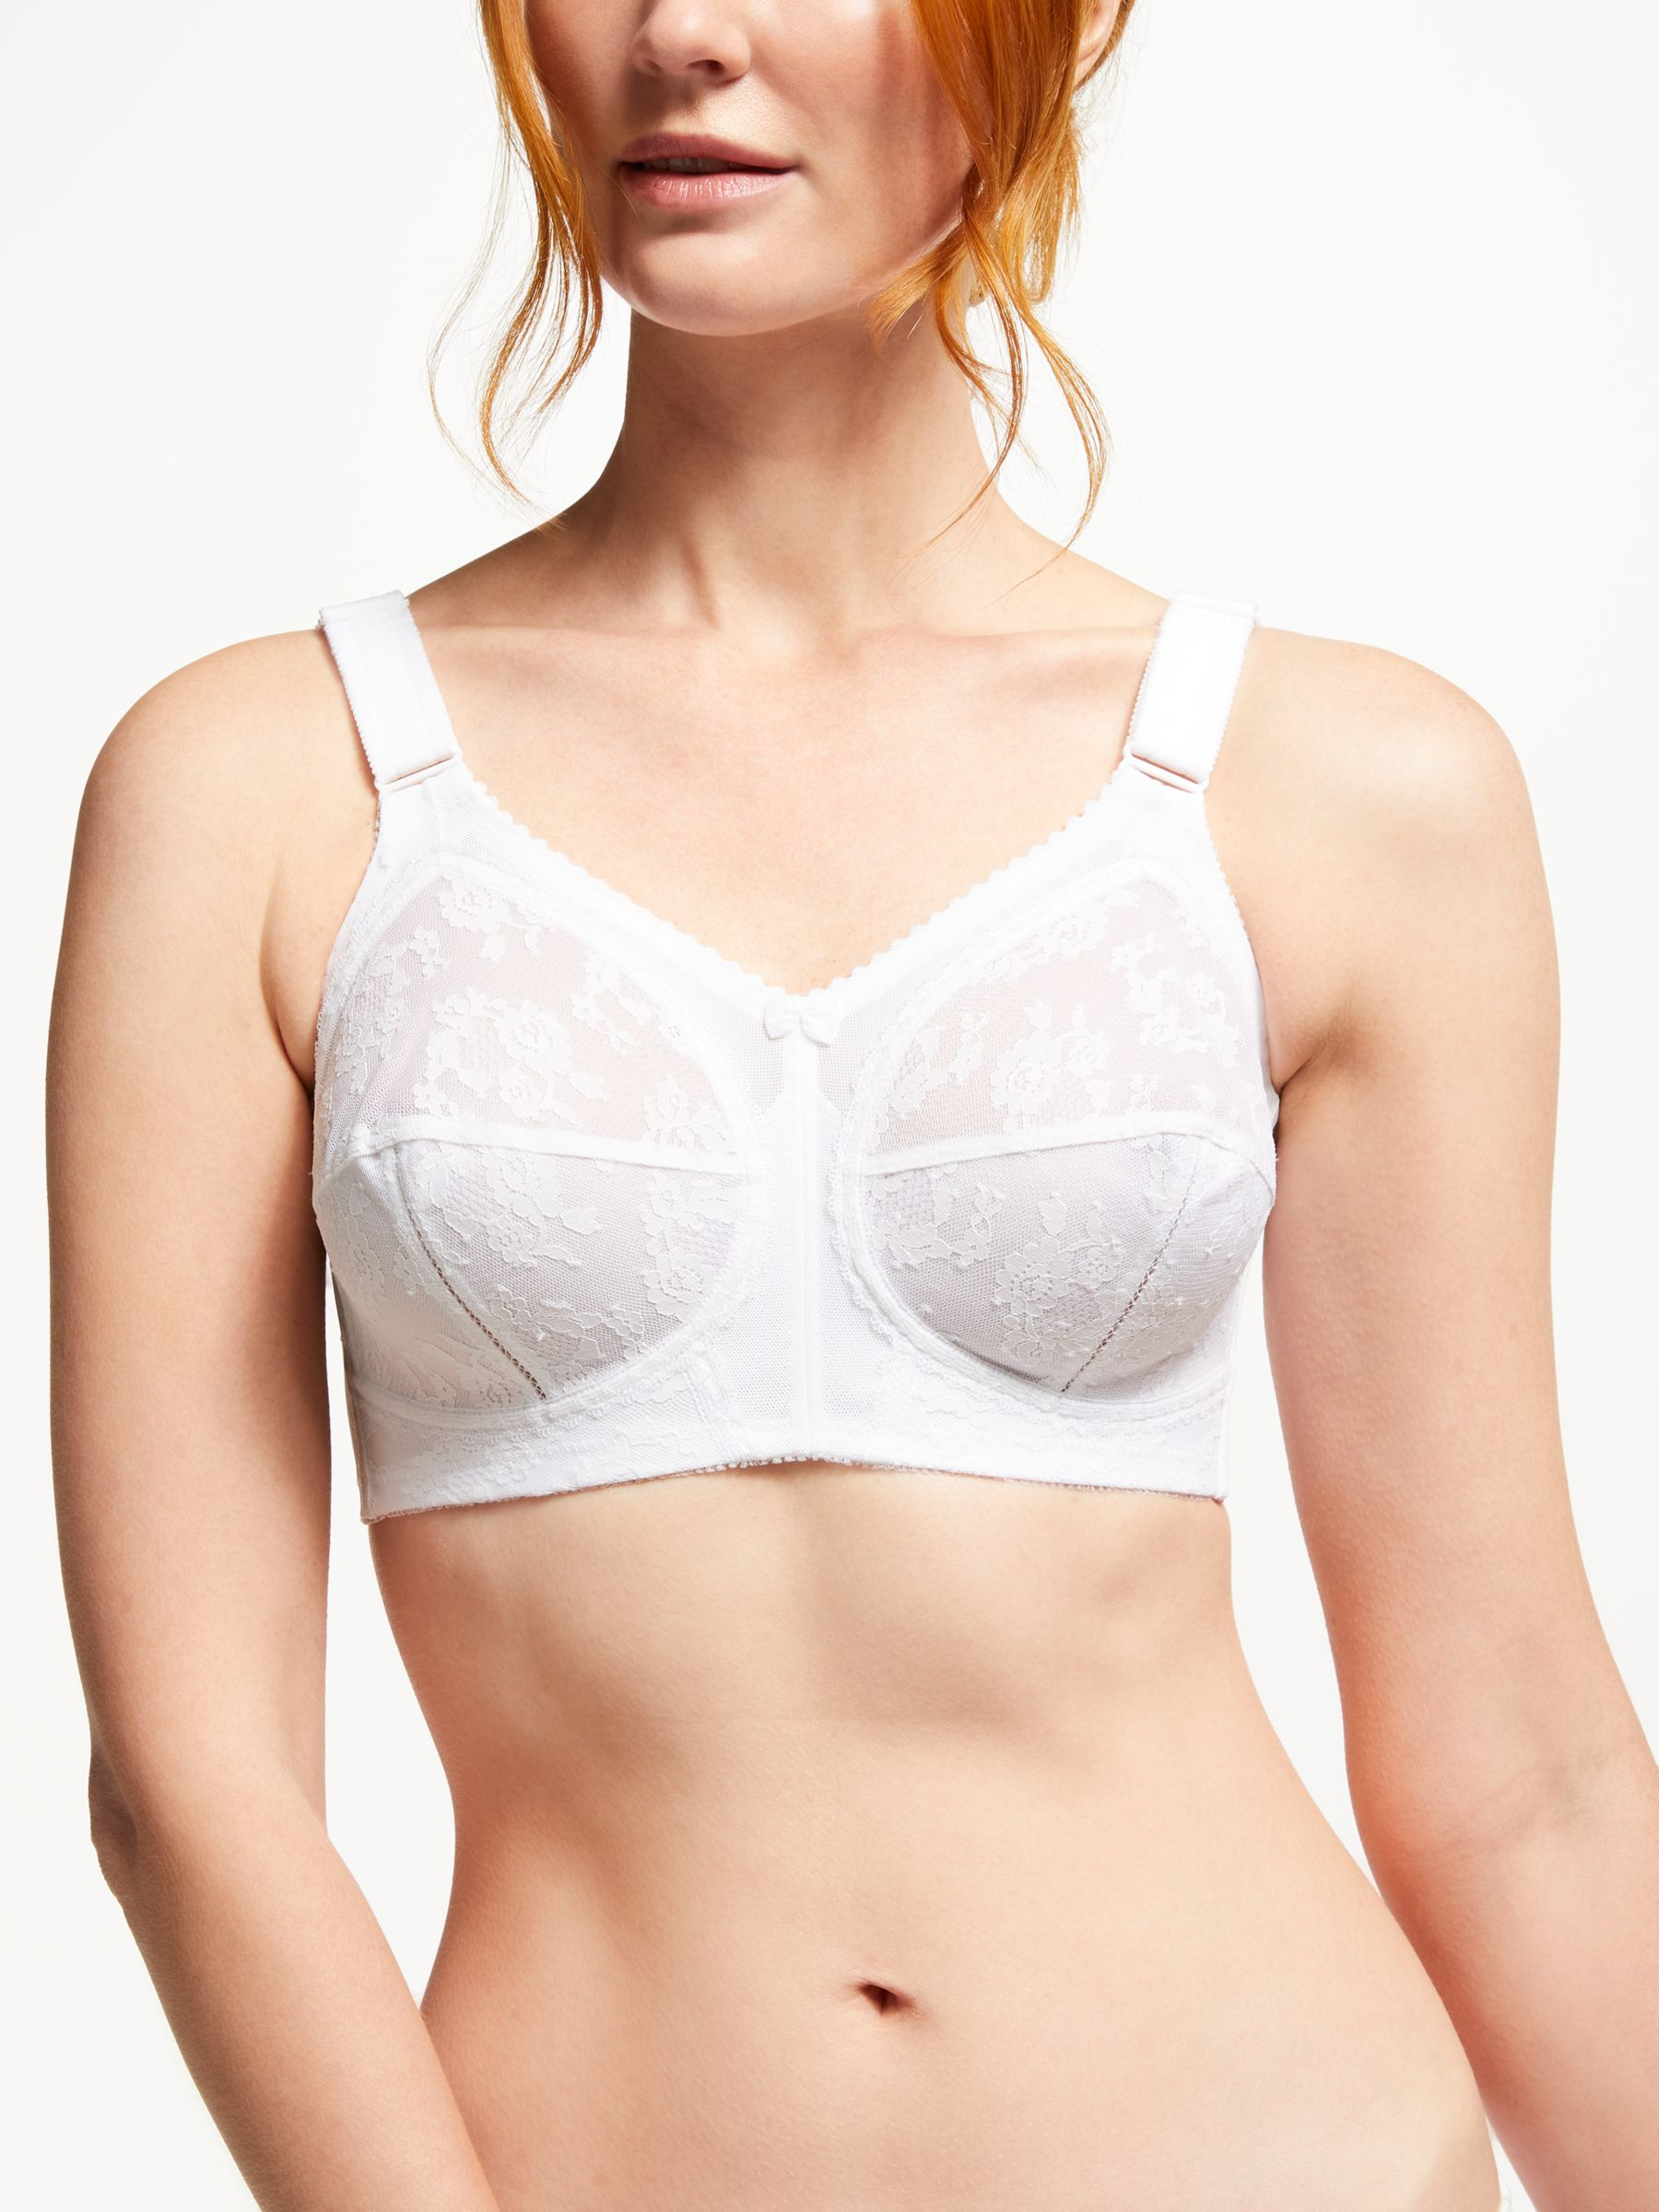 Triumph Triumph Doreen Non Wired Bra, White